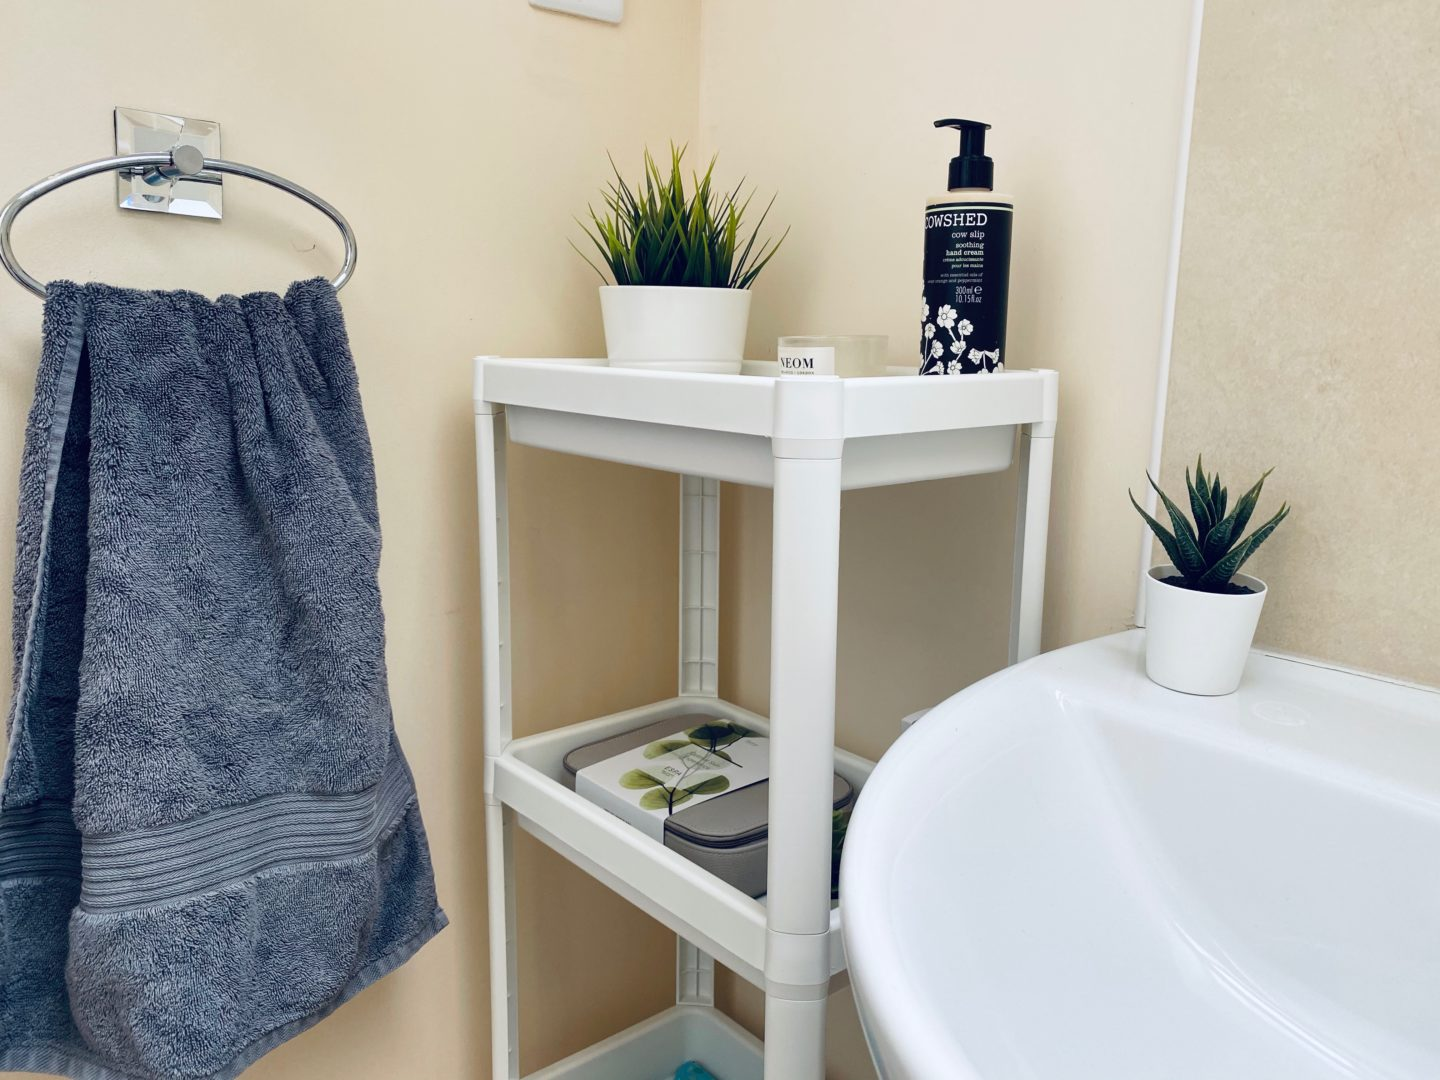 AD: Taking back control of mornings for only £51.75 with IKEA organisation hacks. Bathroom after IKEA items.